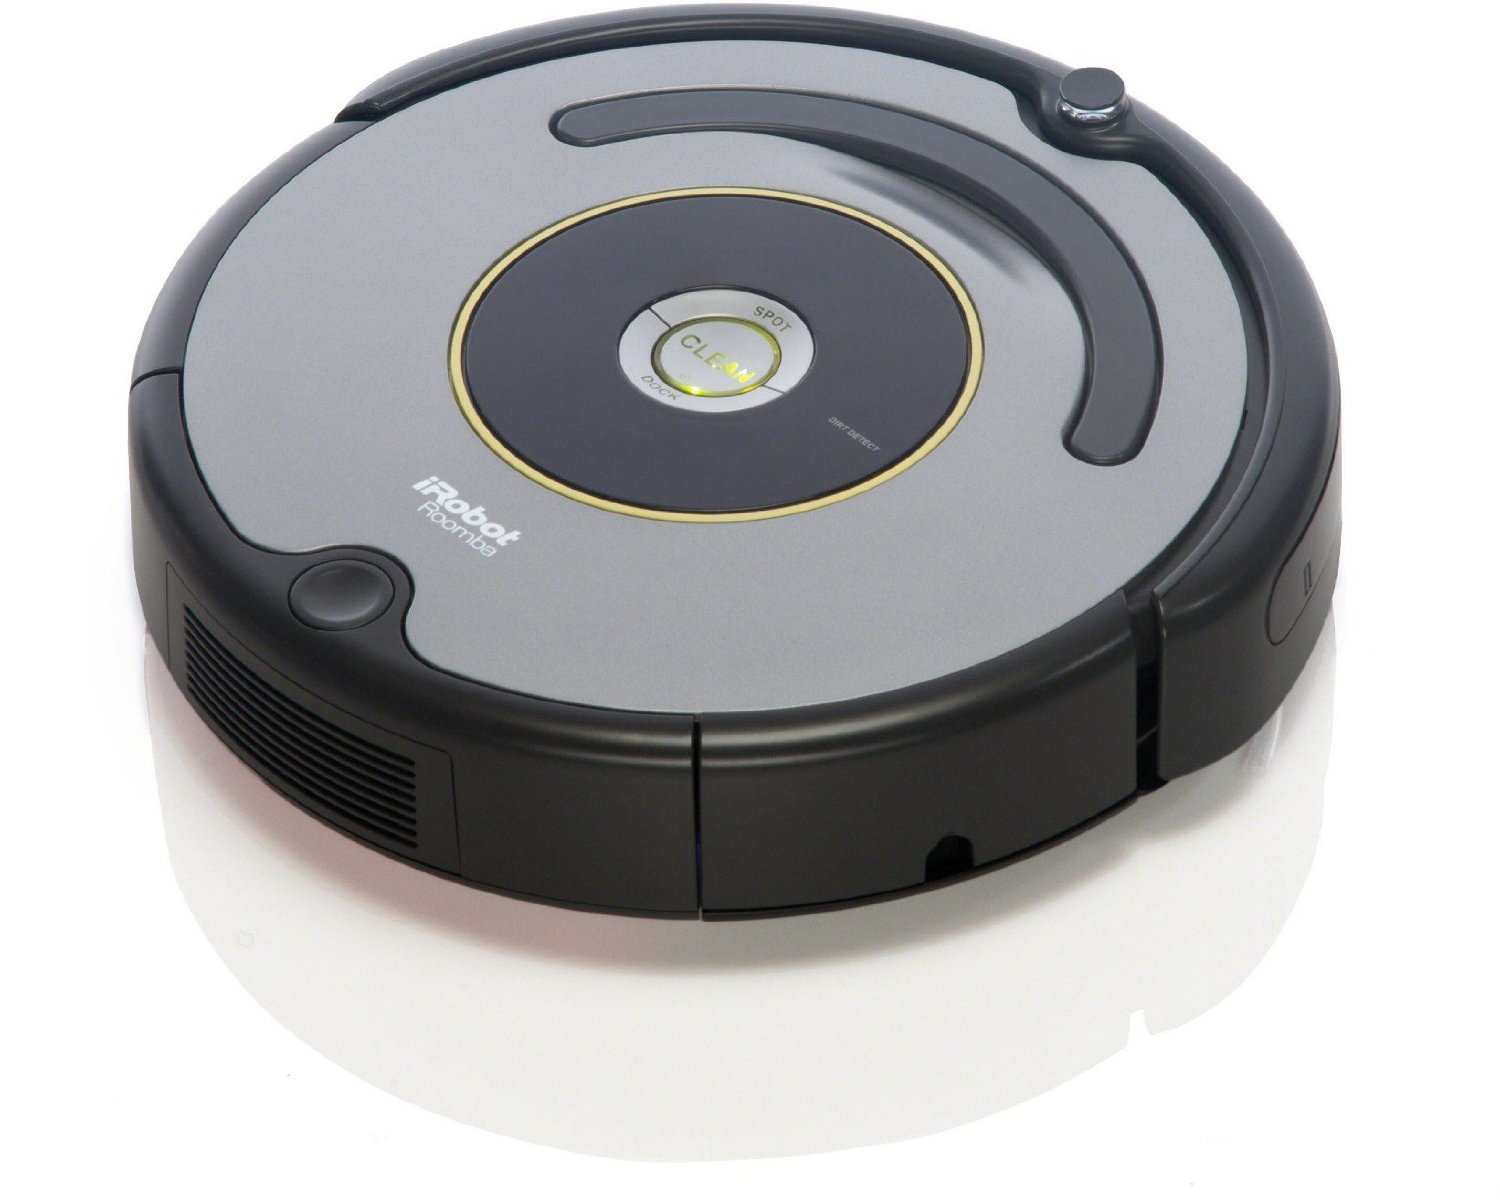 irobot roomba 630 staubsaug roboter im test. Black Bedroom Furniture Sets. Home Design Ideas